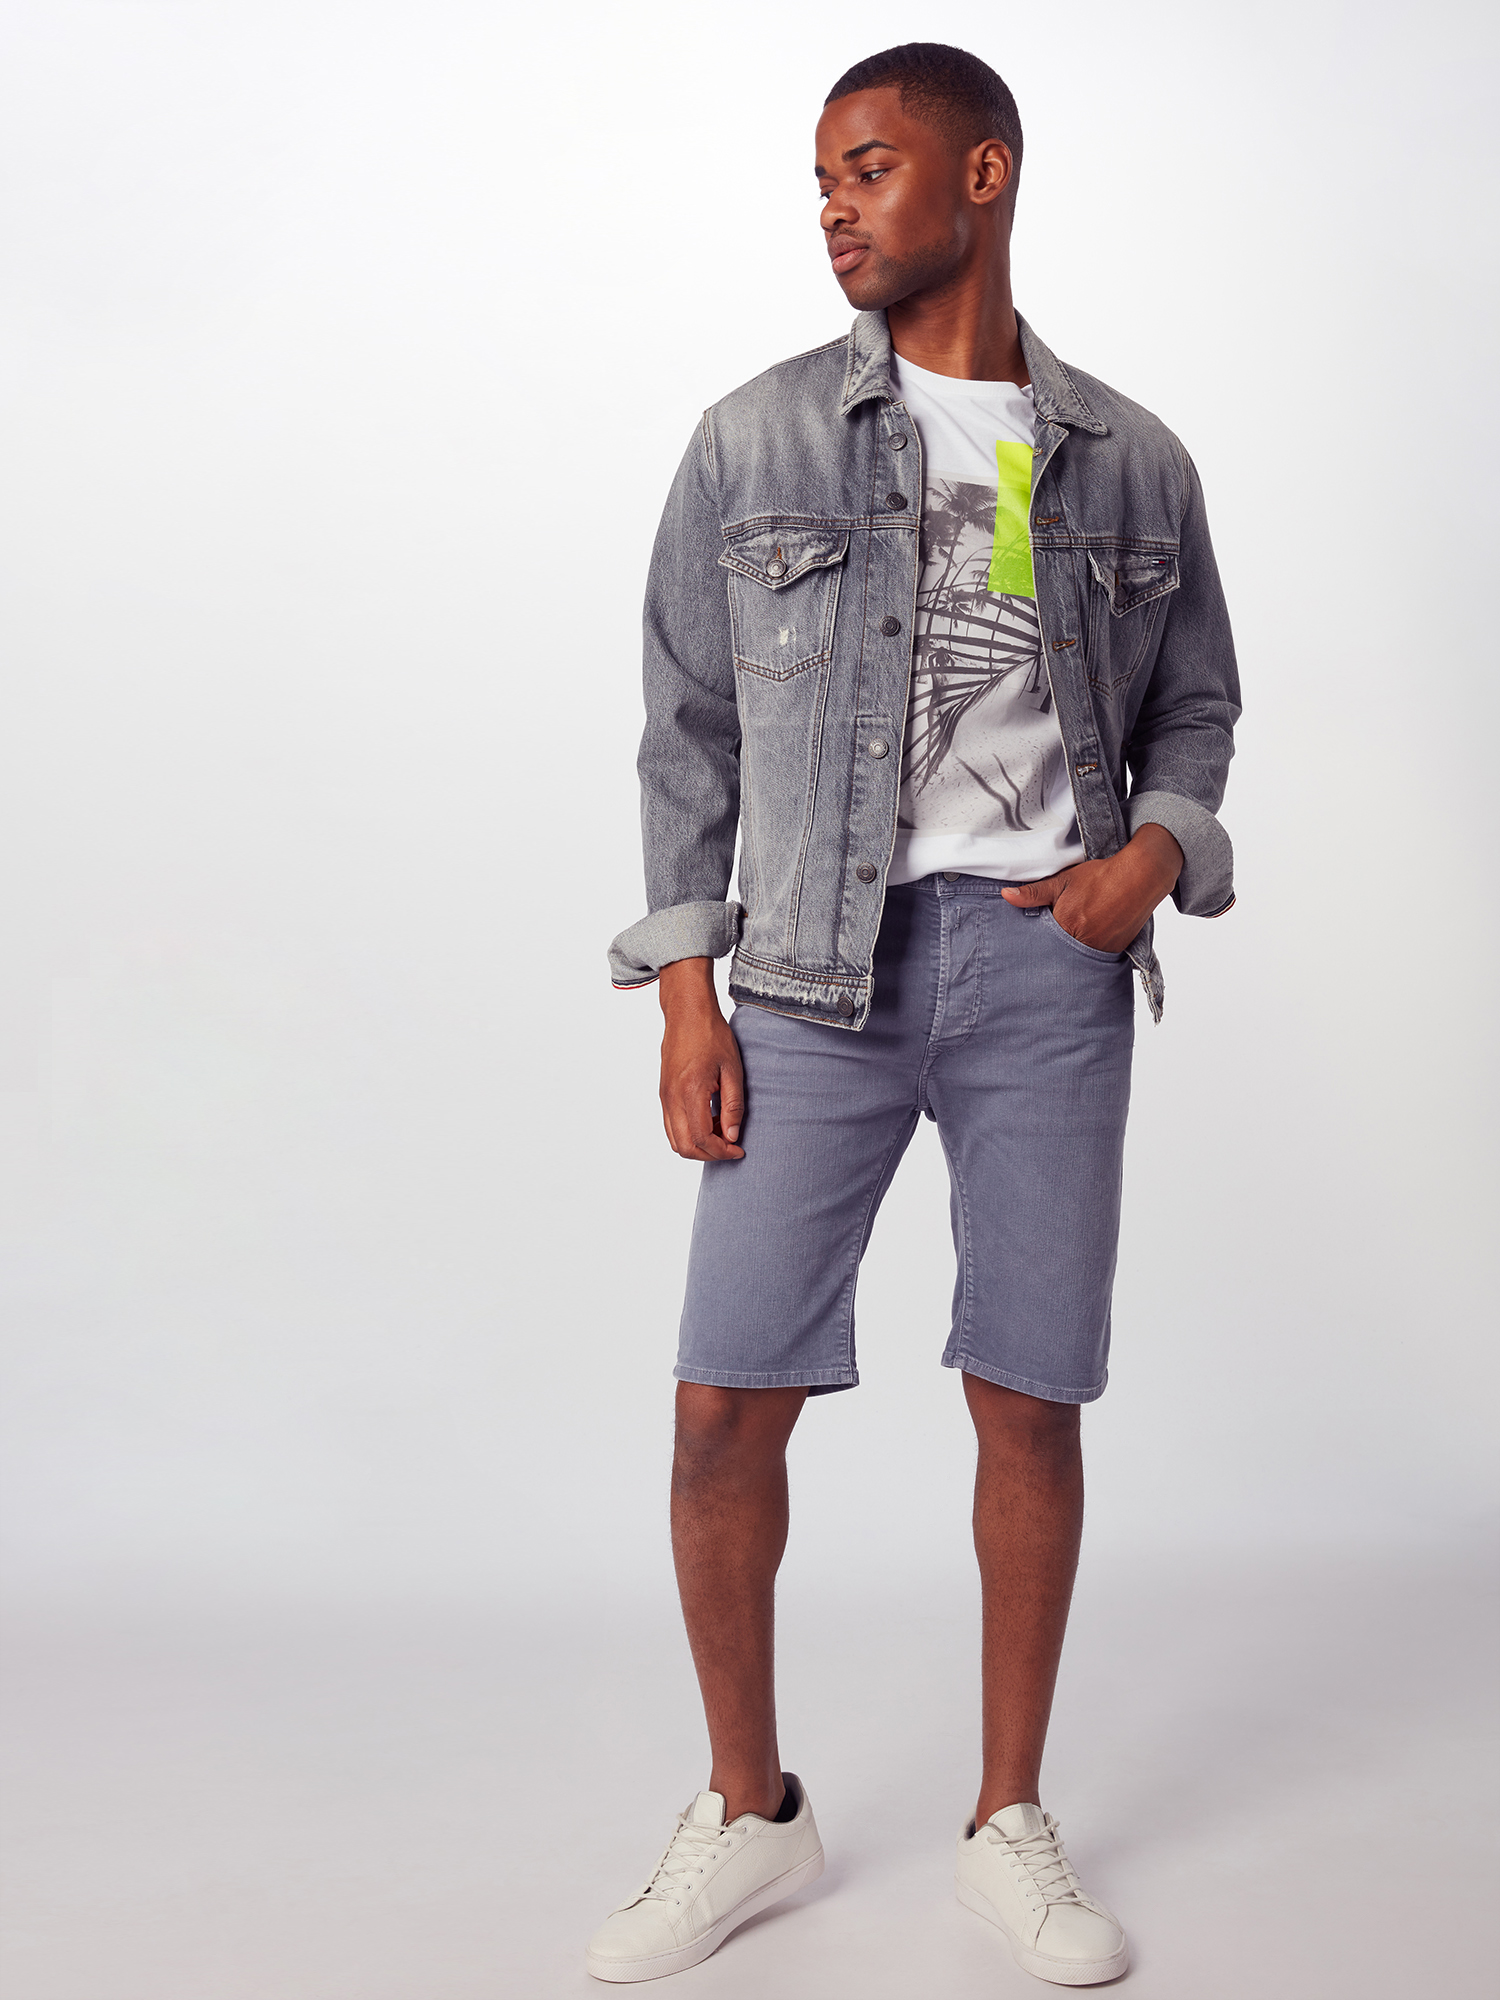 REPLAY Jeans 'RBJ.901.Shorts' in Blauw denim f8JmSMLE